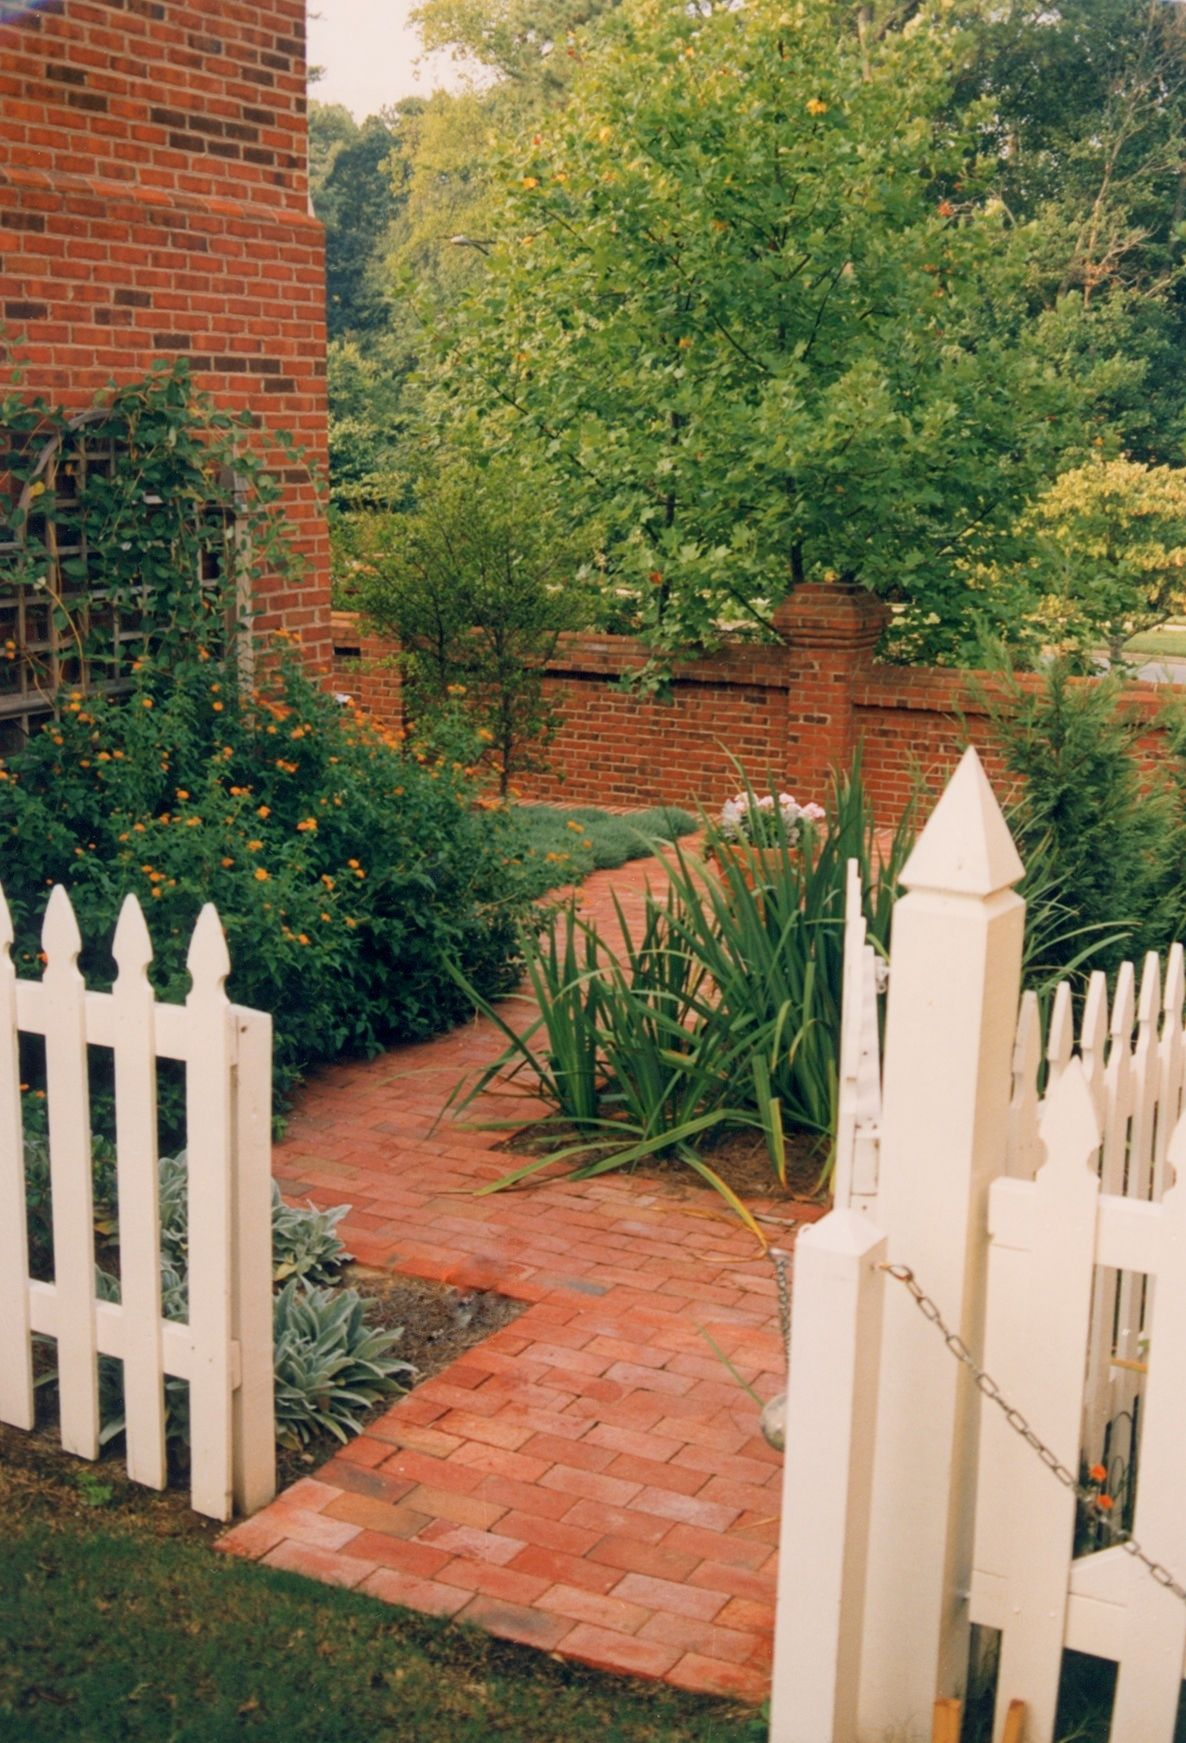 Picket fence brick walk side yard